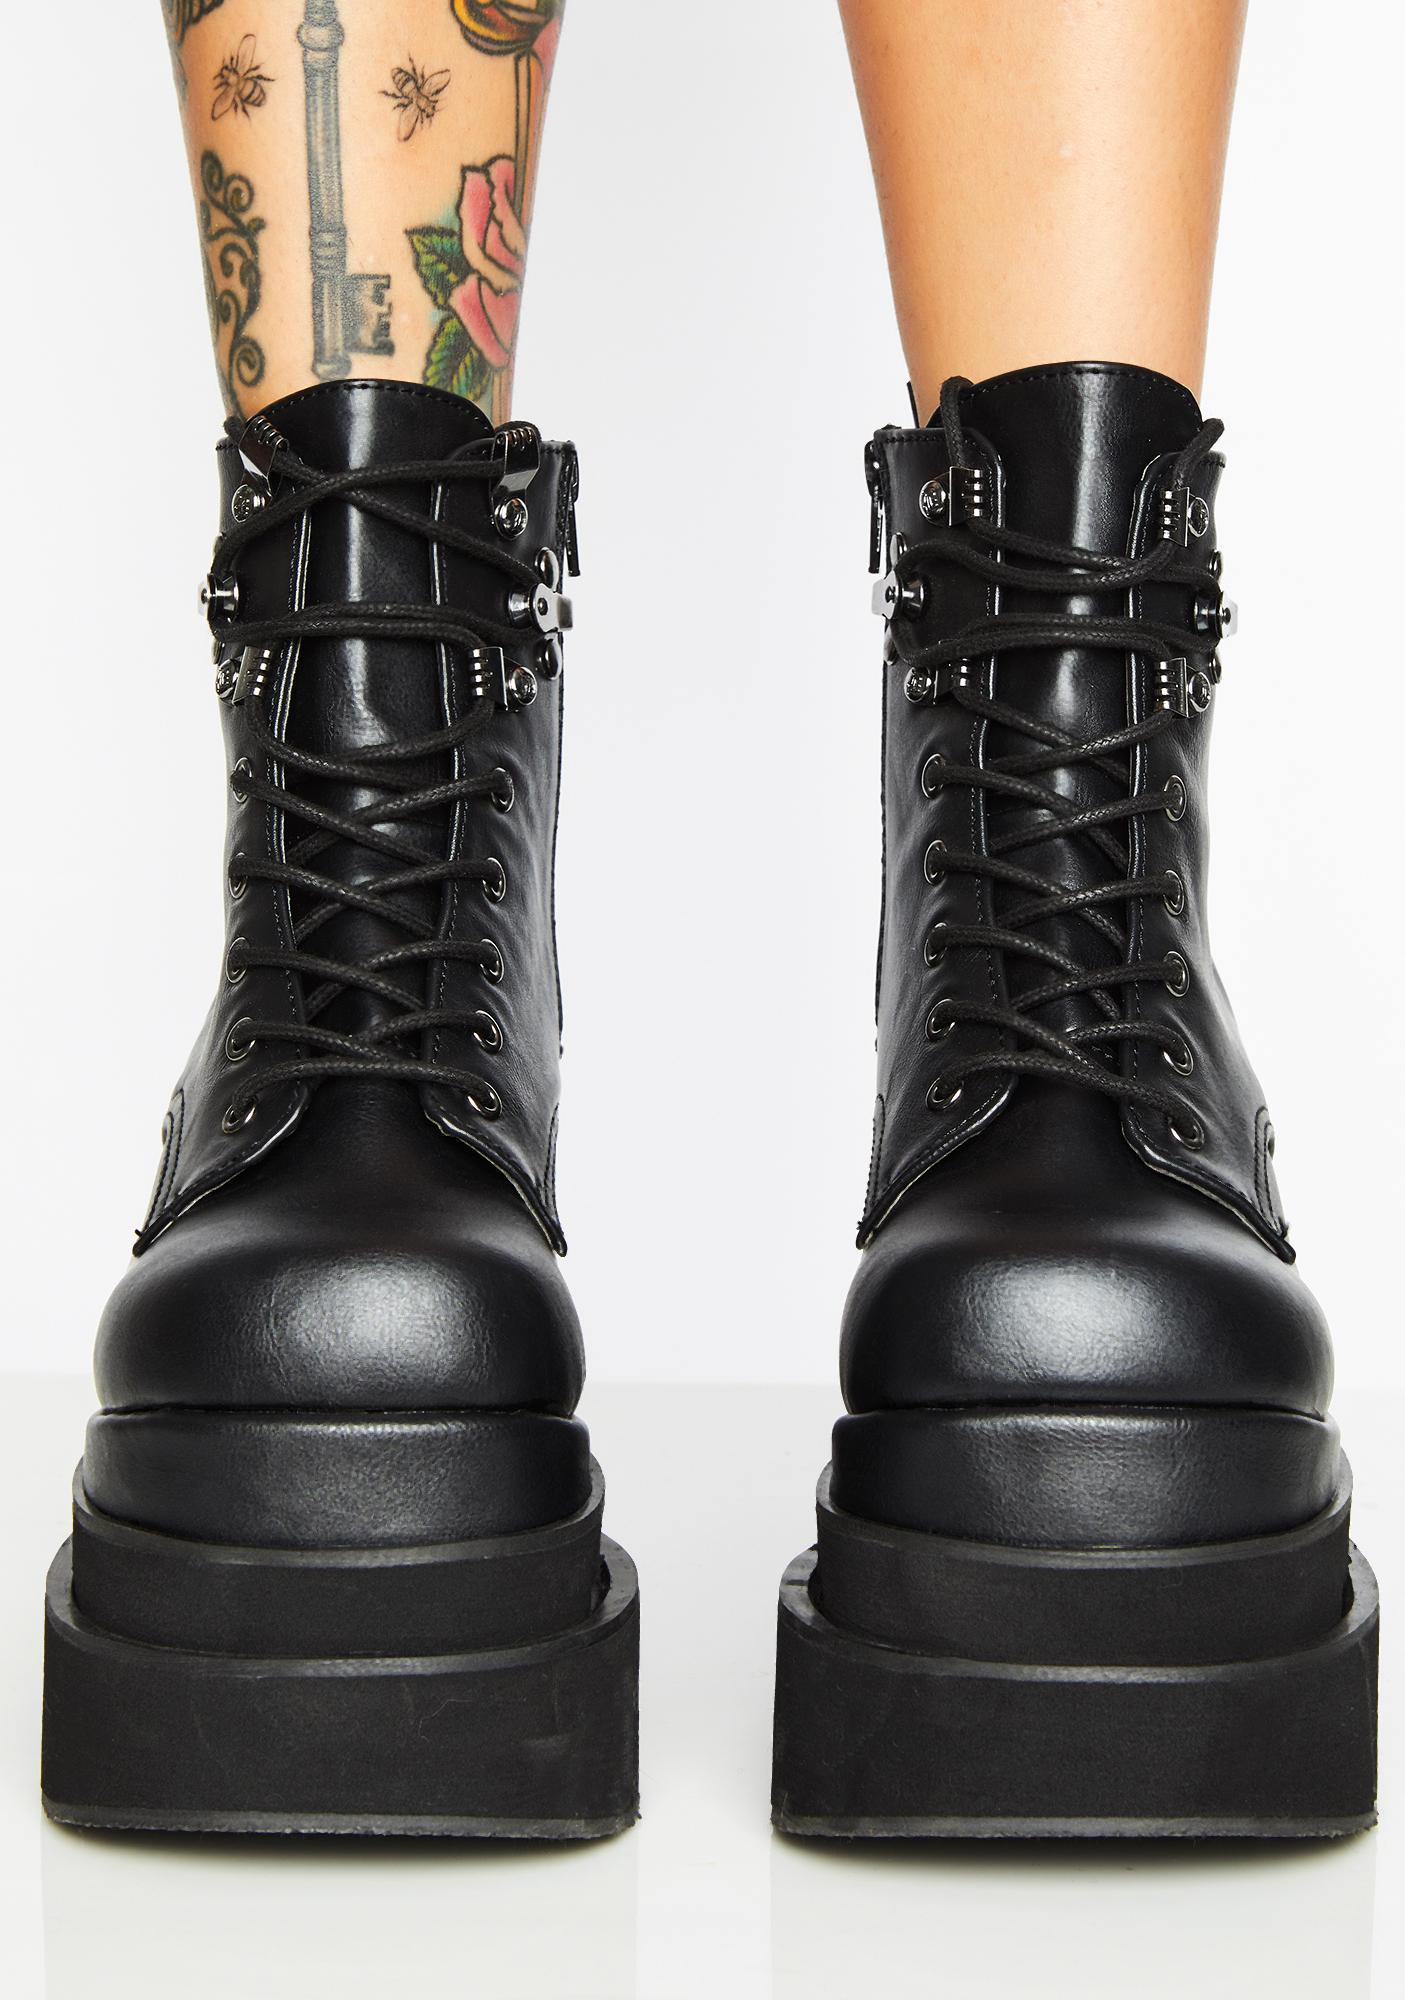 Demonia Eternal Night Platform Boots